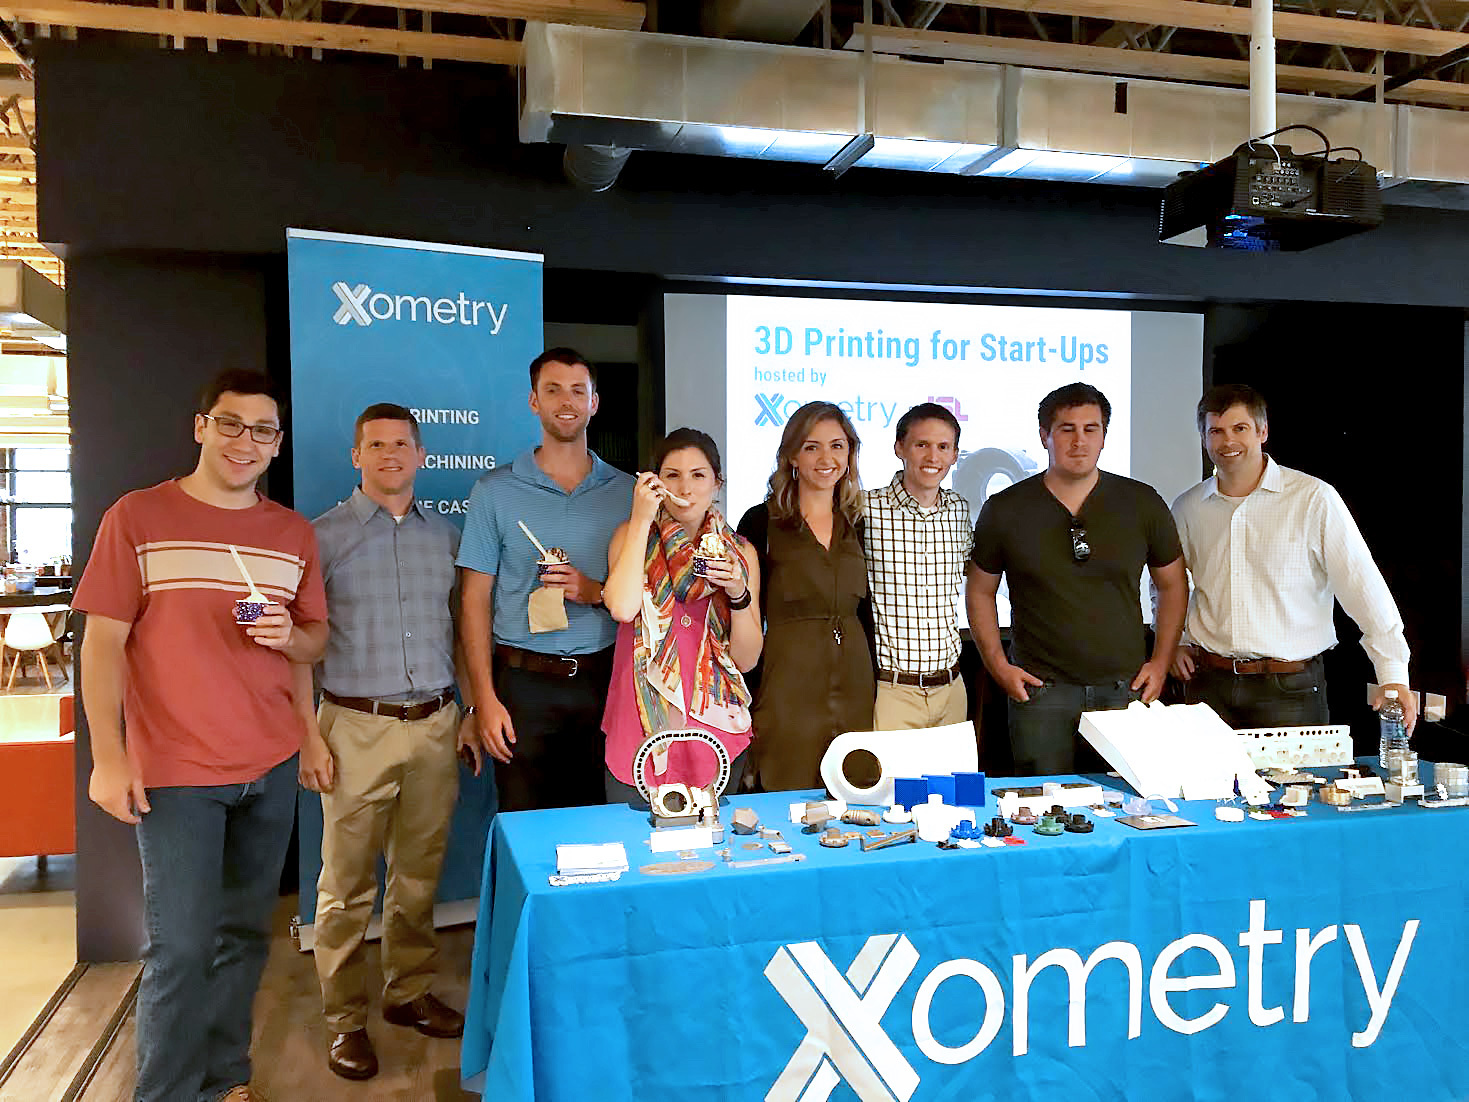 The Xometry Team